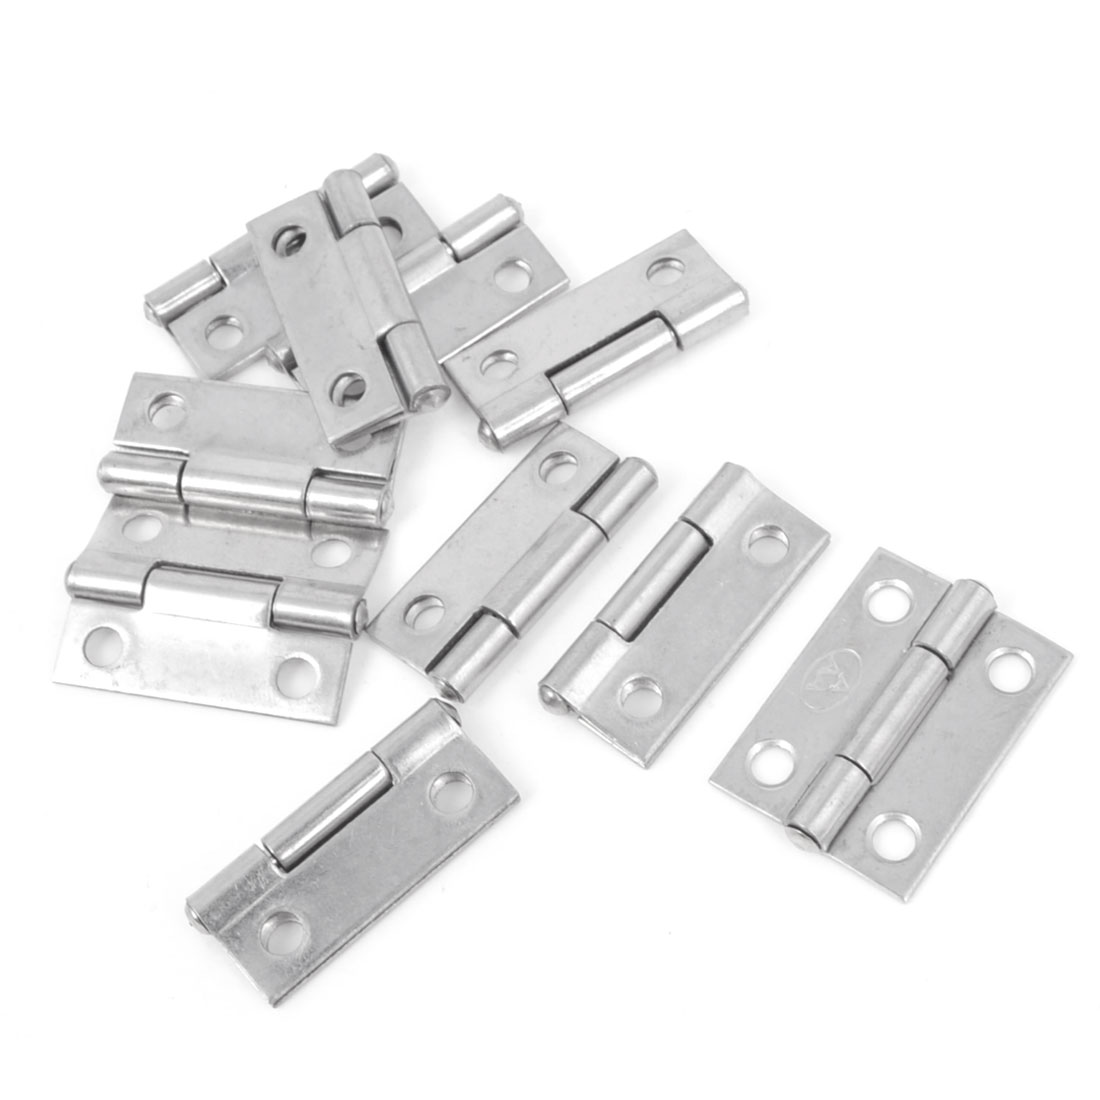 10 Pcs Silver Tone Stainless Steel Cabinet Door Butt Hinges 1""